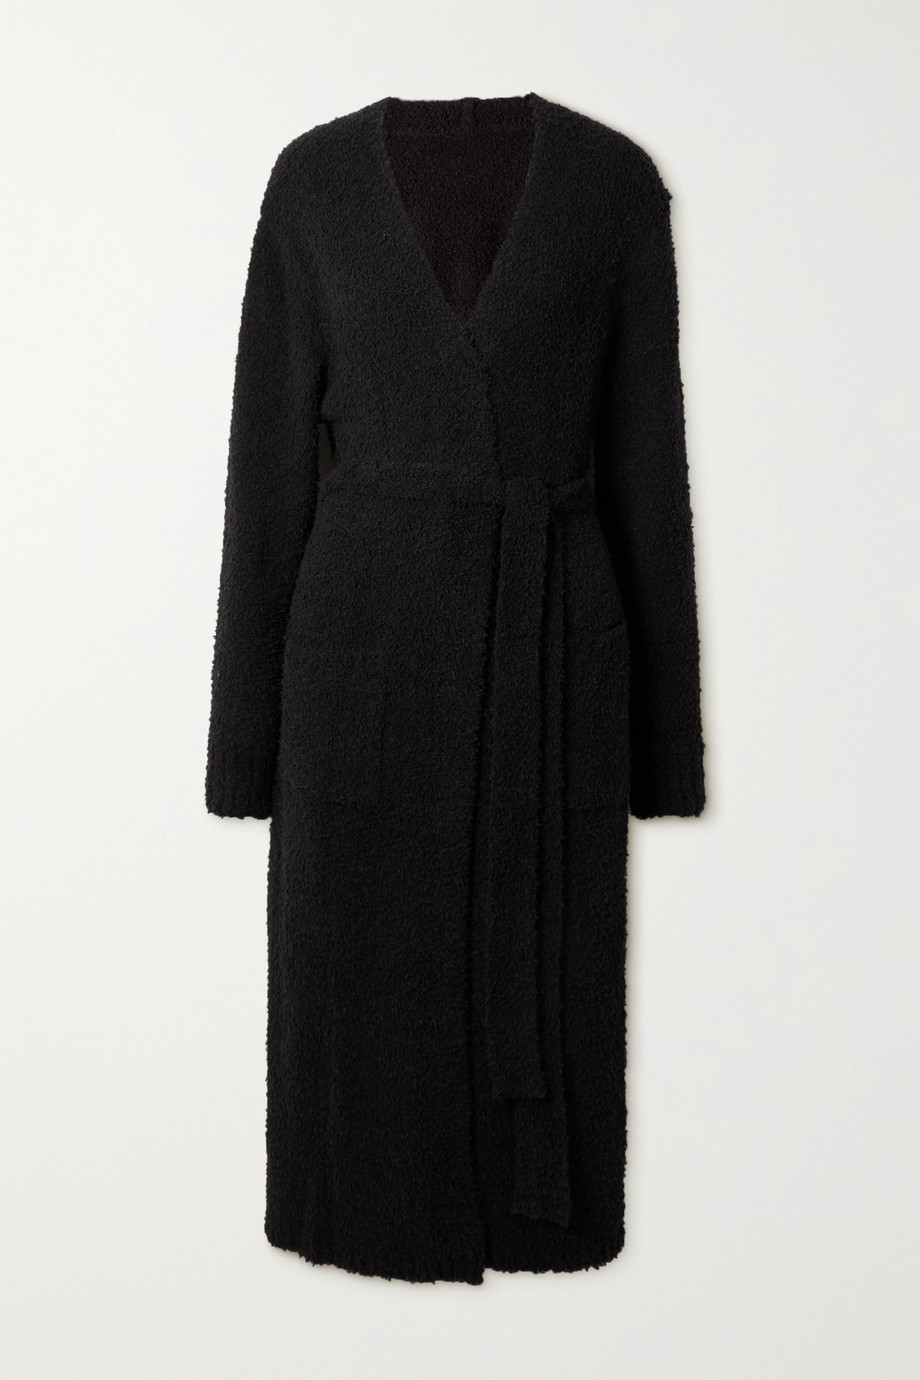 SKIMS Cozy Knit bouclé robe - Onyx